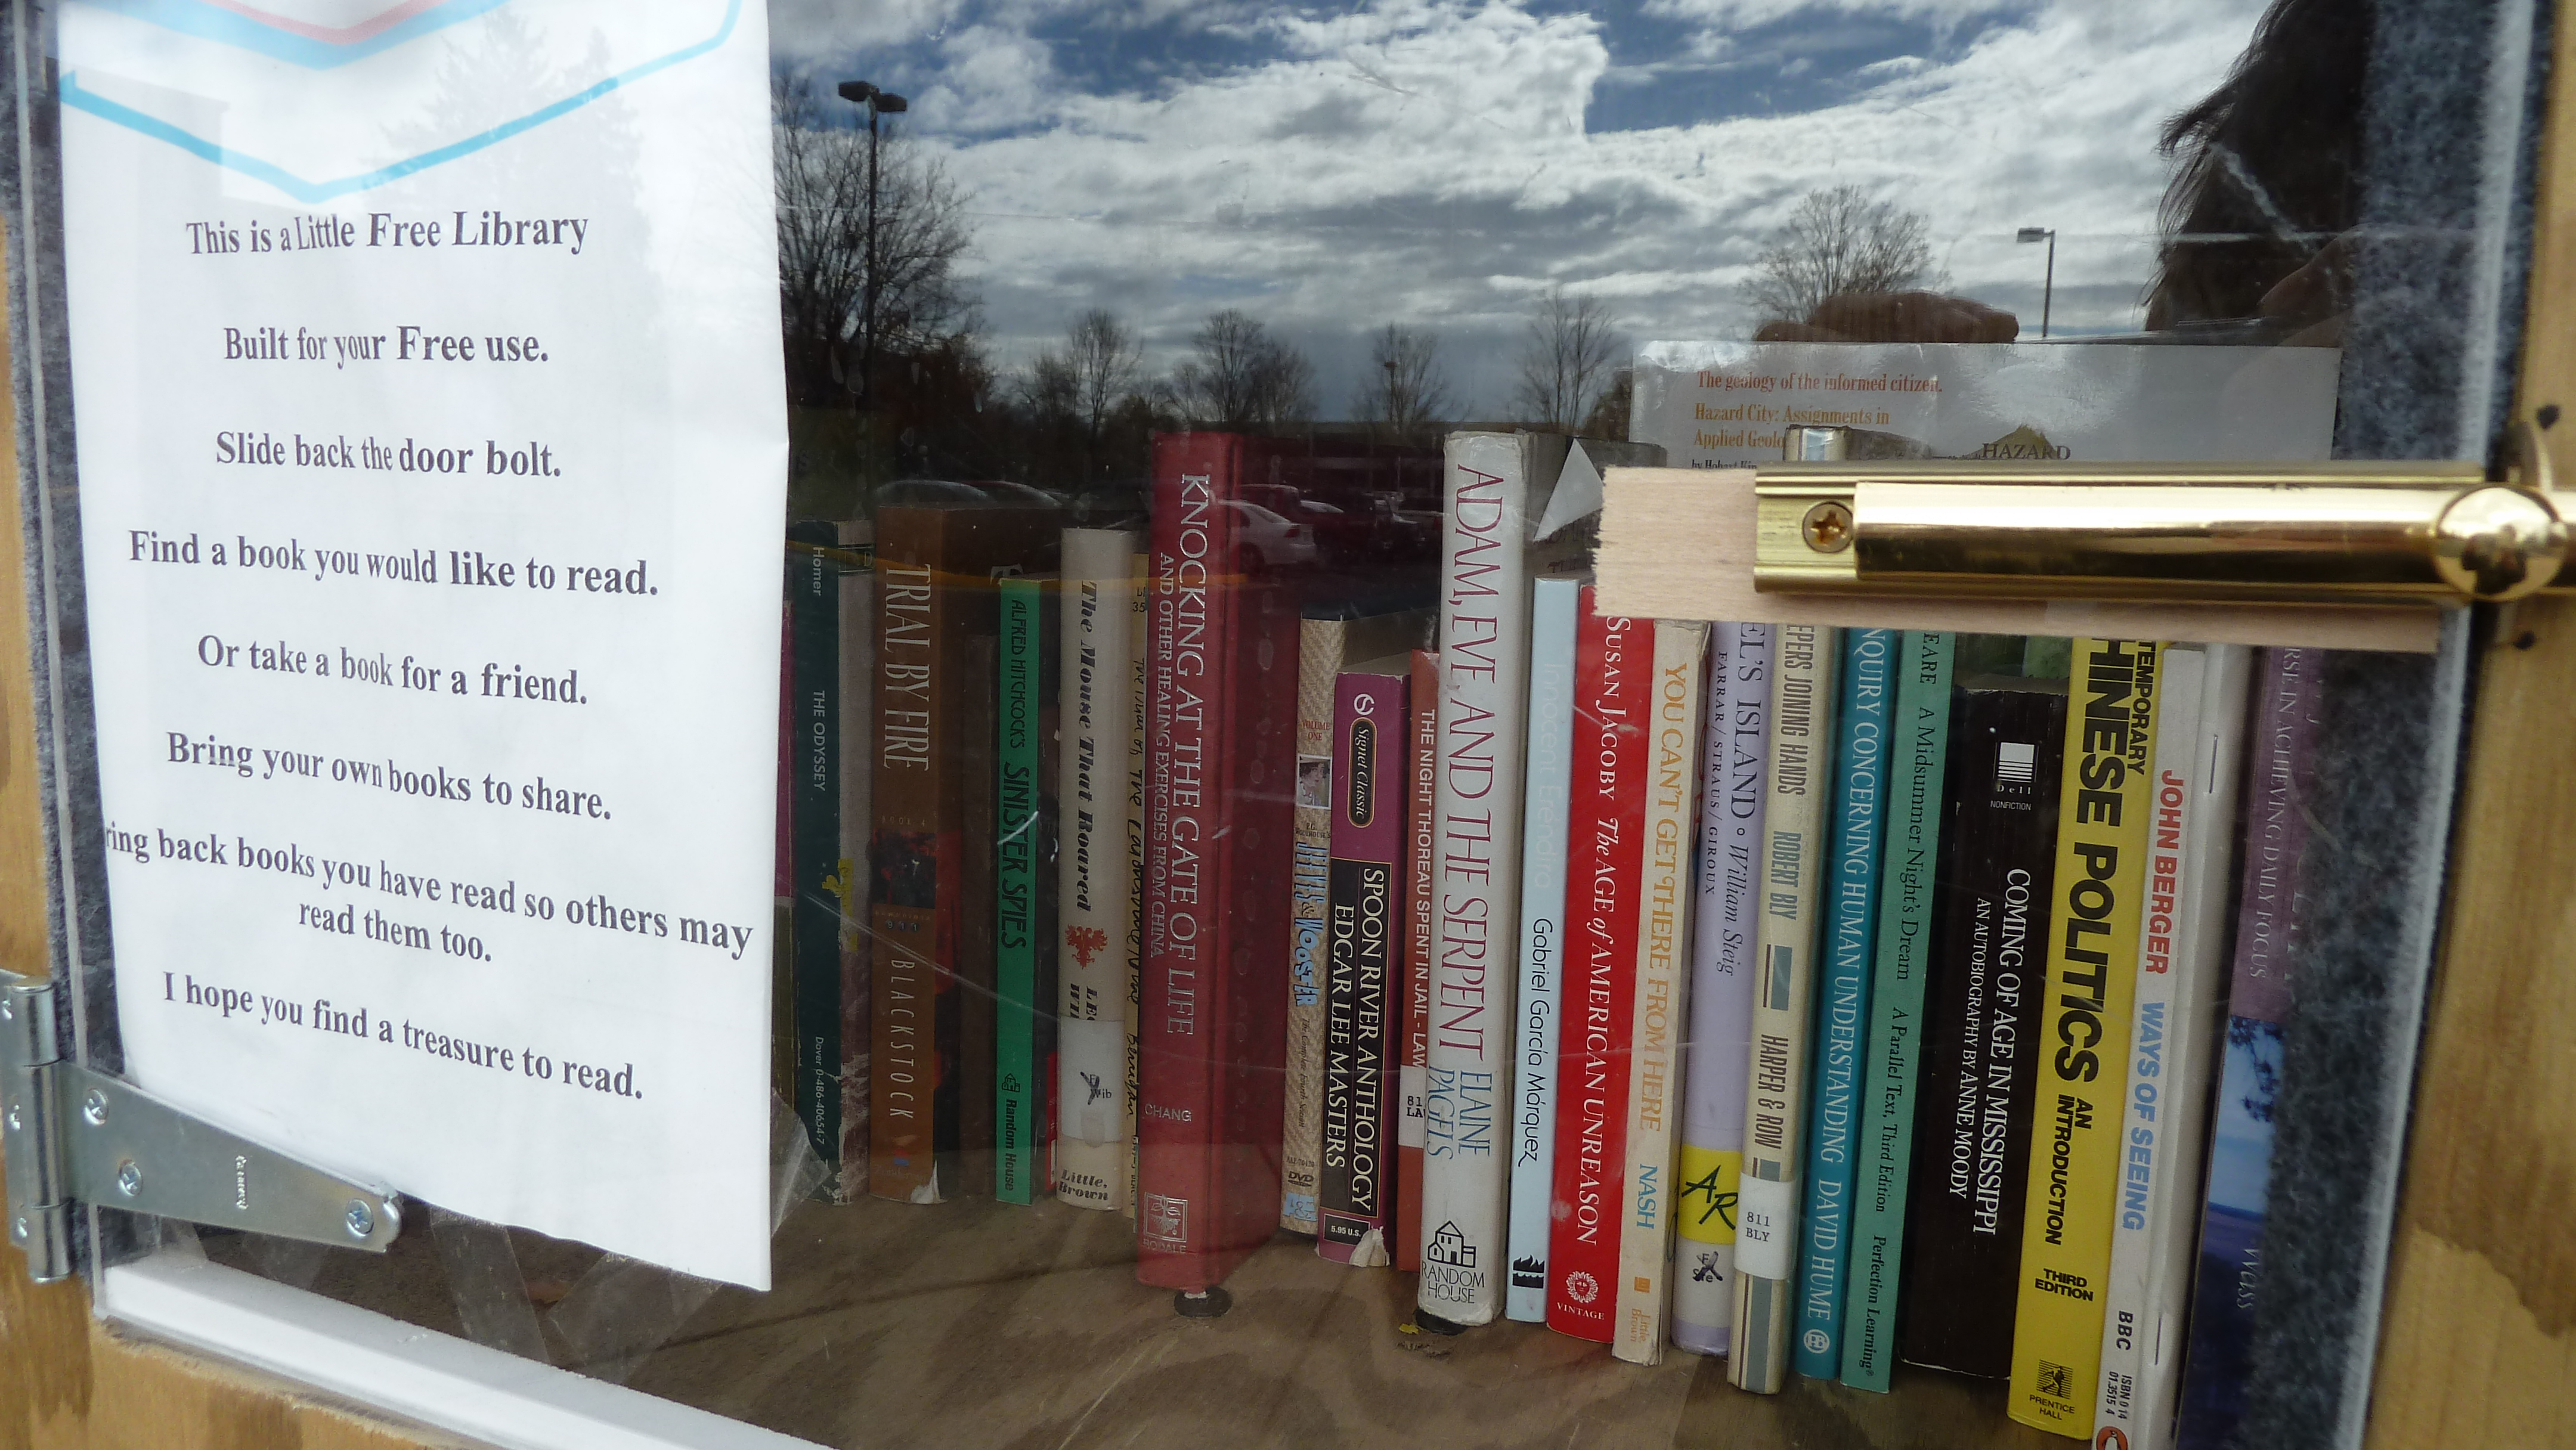 And Now I Can Get A Free Trip Anytime I Pop By The Little Book Shed Looks  Like Something My Husband Could Havee Up With